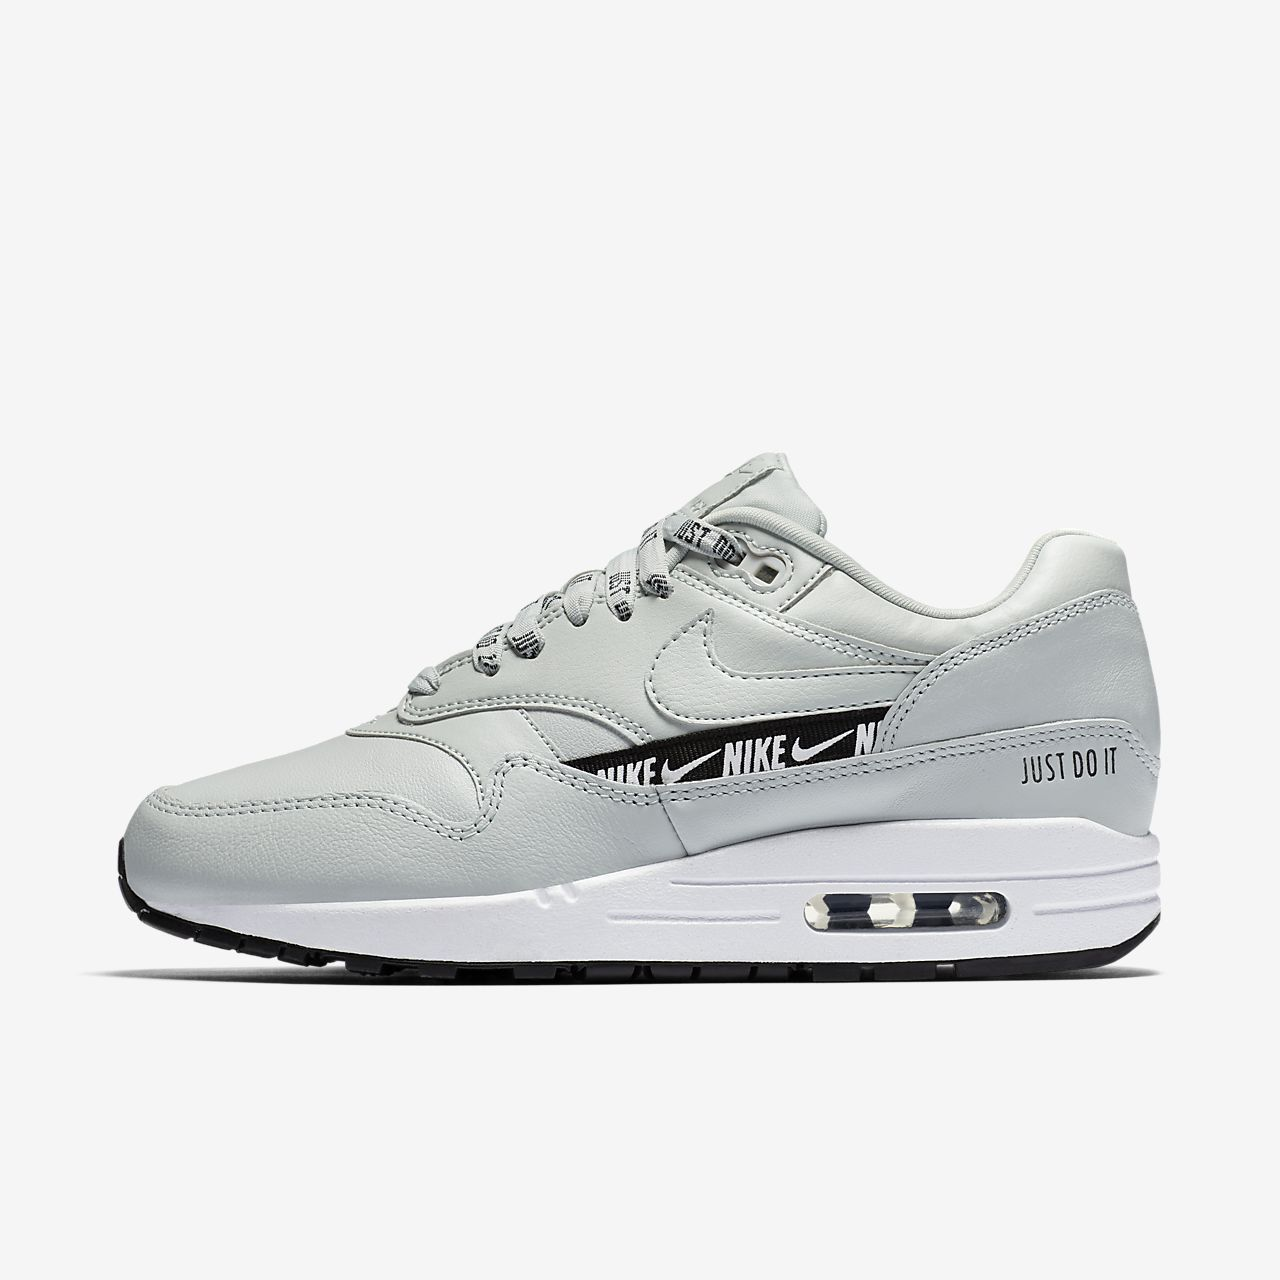 Nike Air Max 1 SE Overbranded Shoe